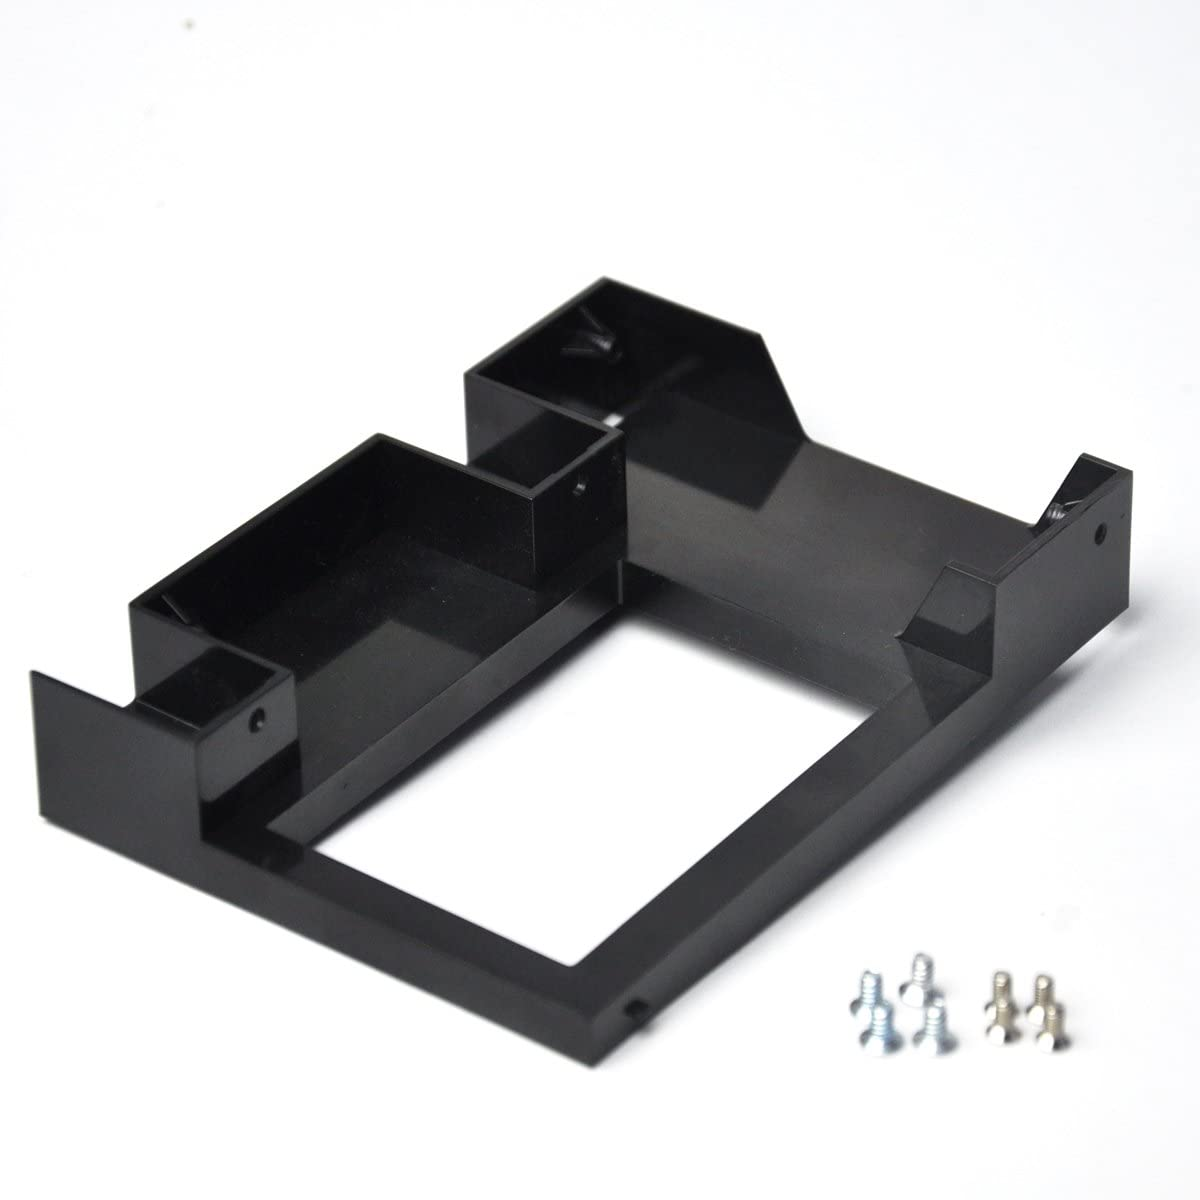 661914-001 HP adapter for G8/G9 SAS/SATA Tray Caddy 2.5 to 3.5